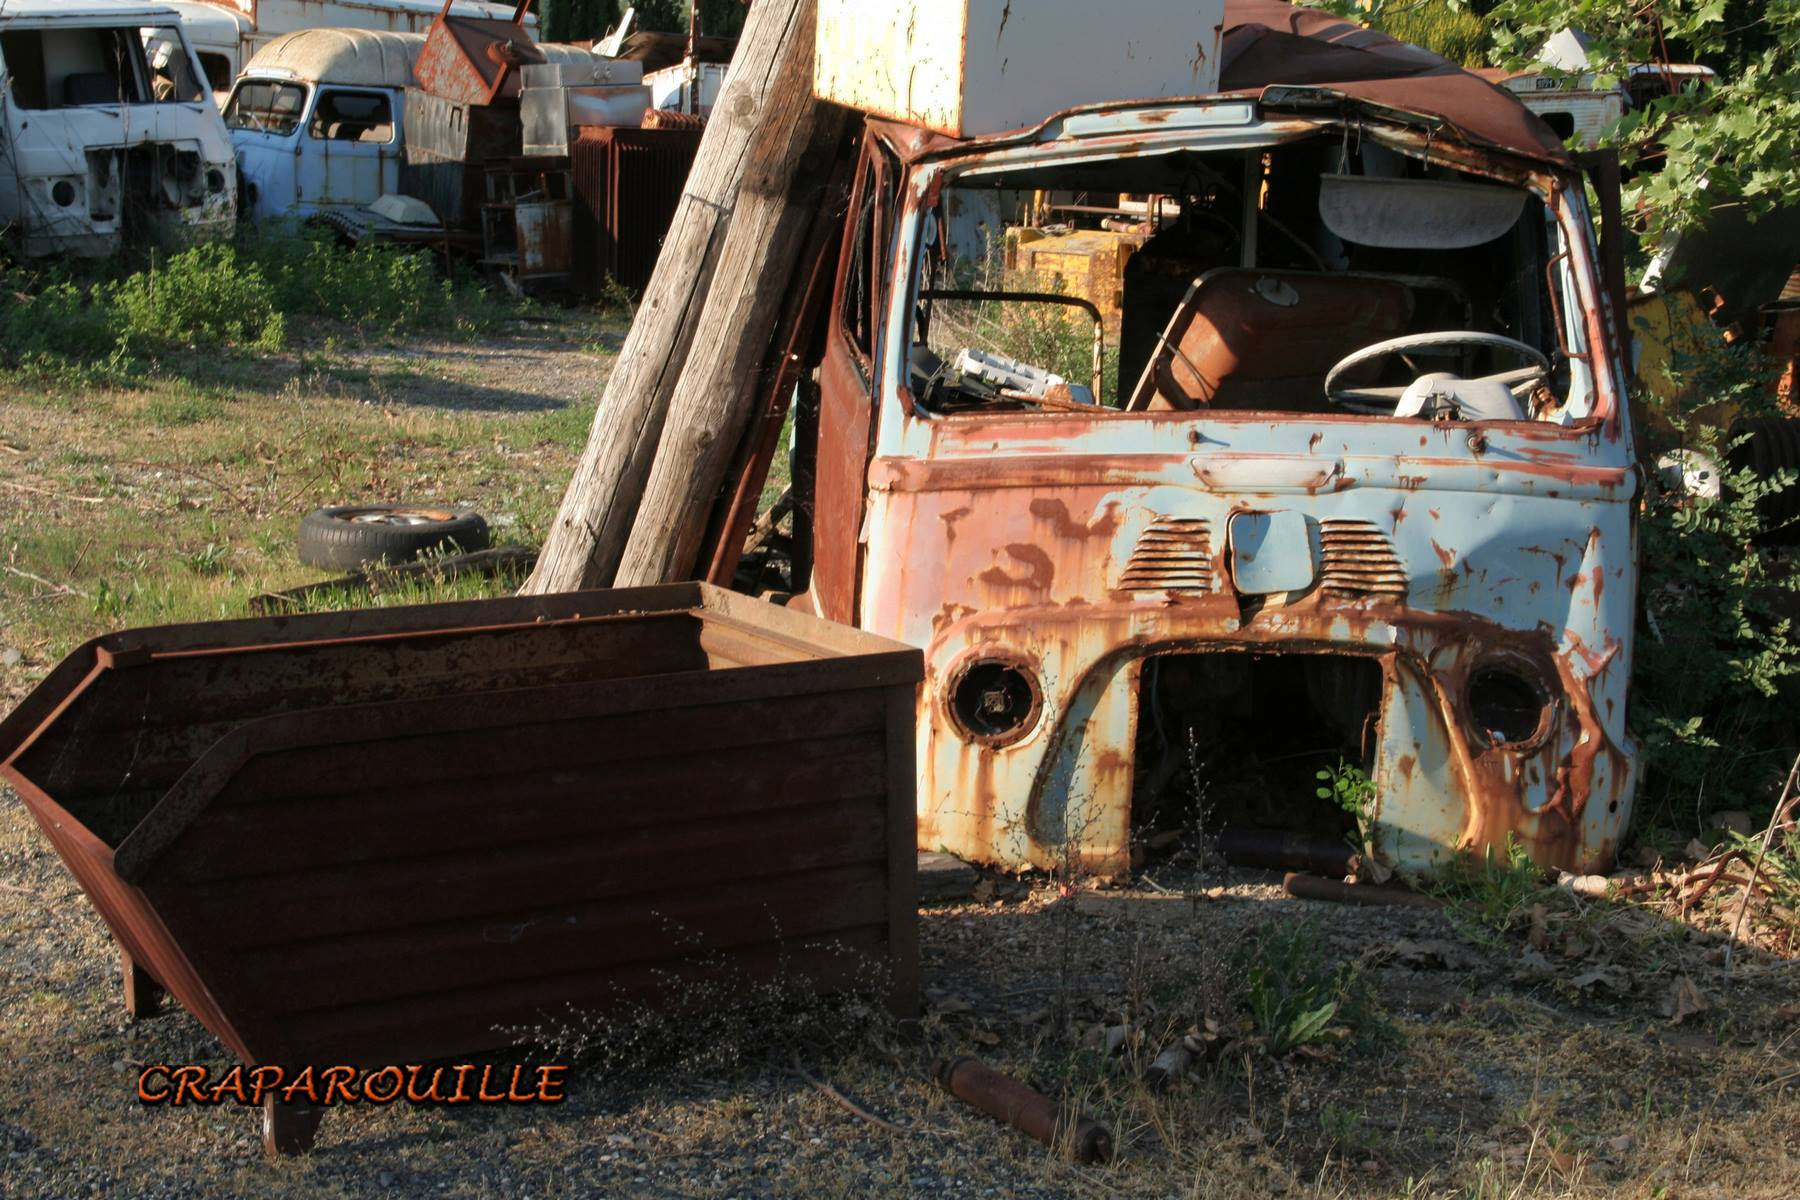 Photography-Diamonds-in-Rust-Craparouille-151